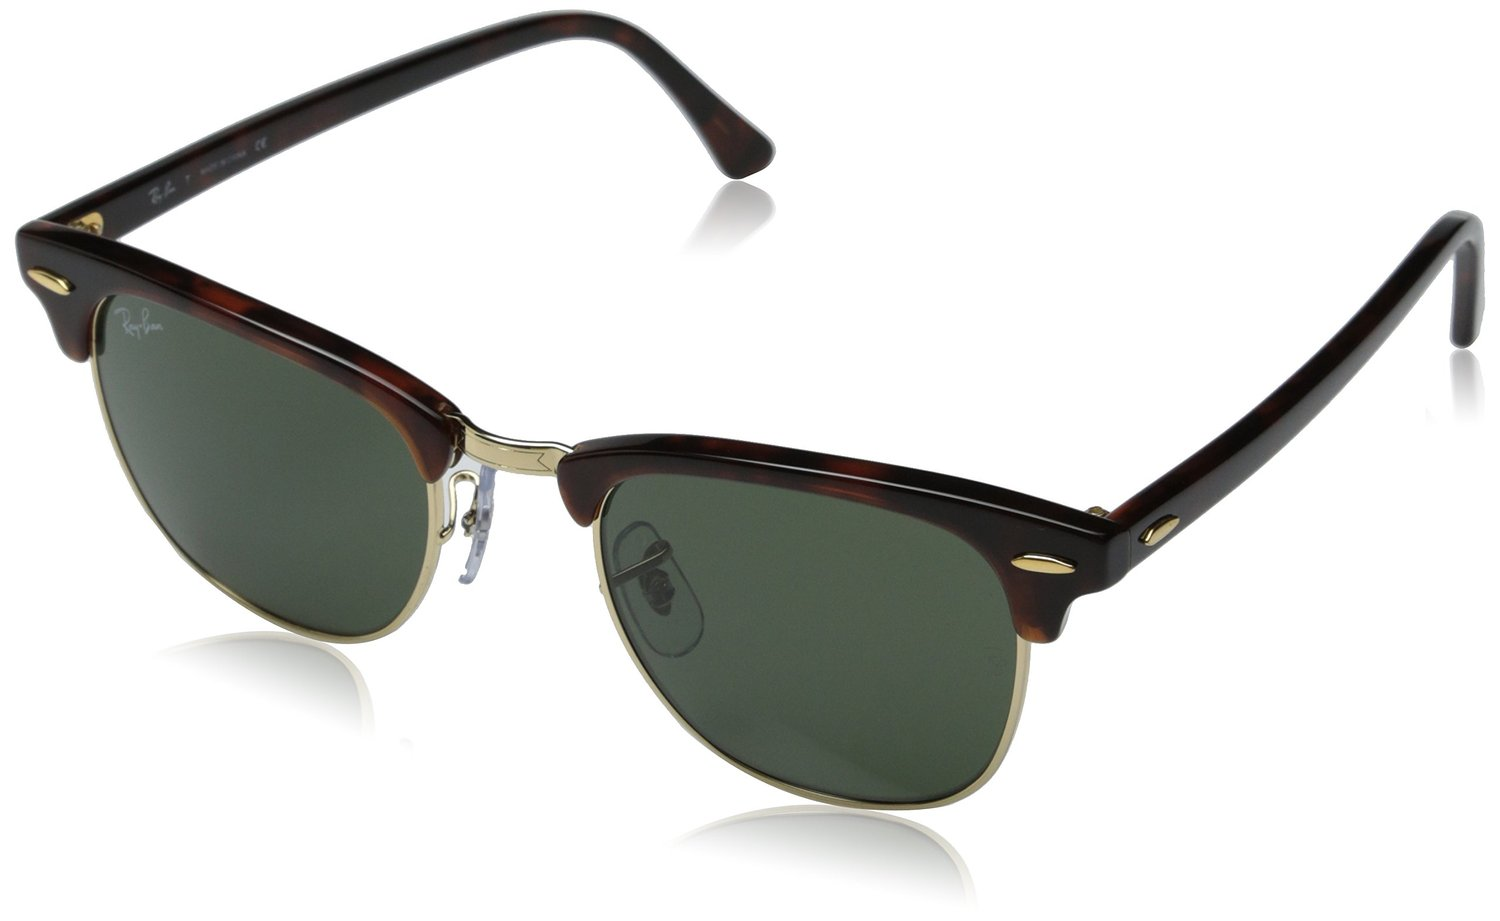 amazoncom ray ban rb3016 classic clubmaster sunglasses non polarized tortoisearista framecrystal green lens